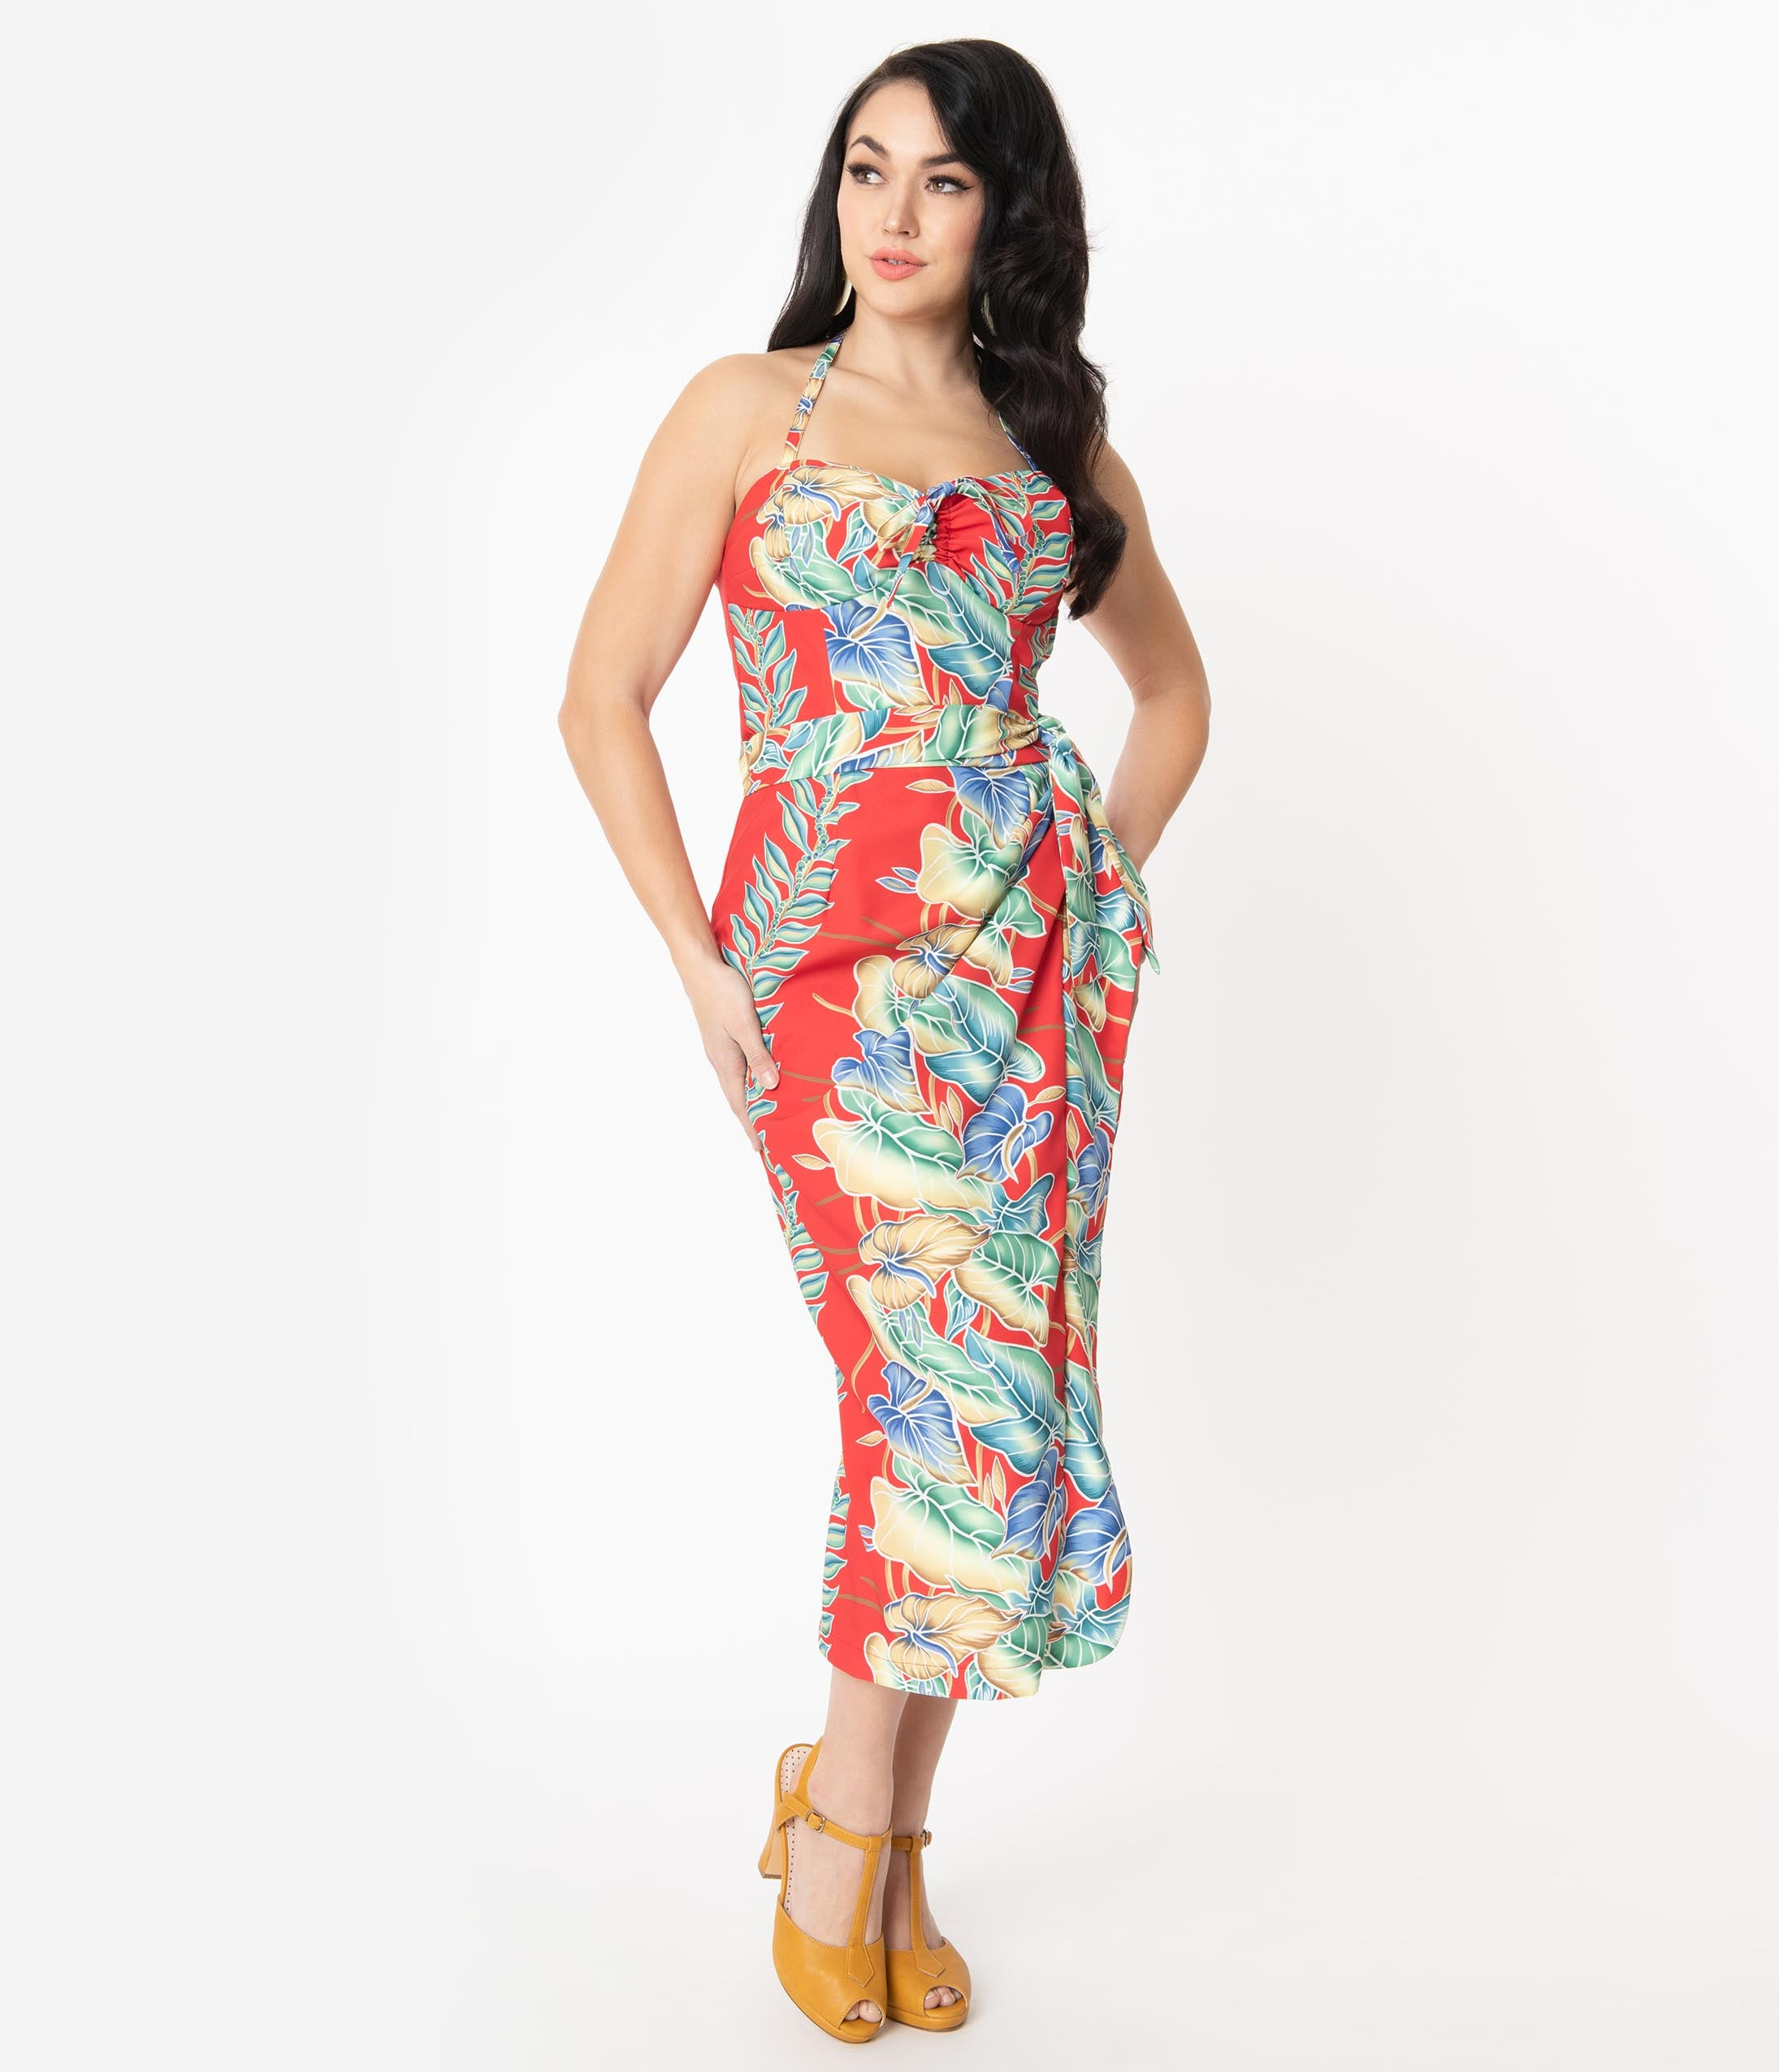 1950s Pencil Dresses & Wiggle Dress Styles Unique Vintage X Kamehameha Red Floral Hawaiian Print Leilani Sarong Dress $128.00 AT vintagedancer.com